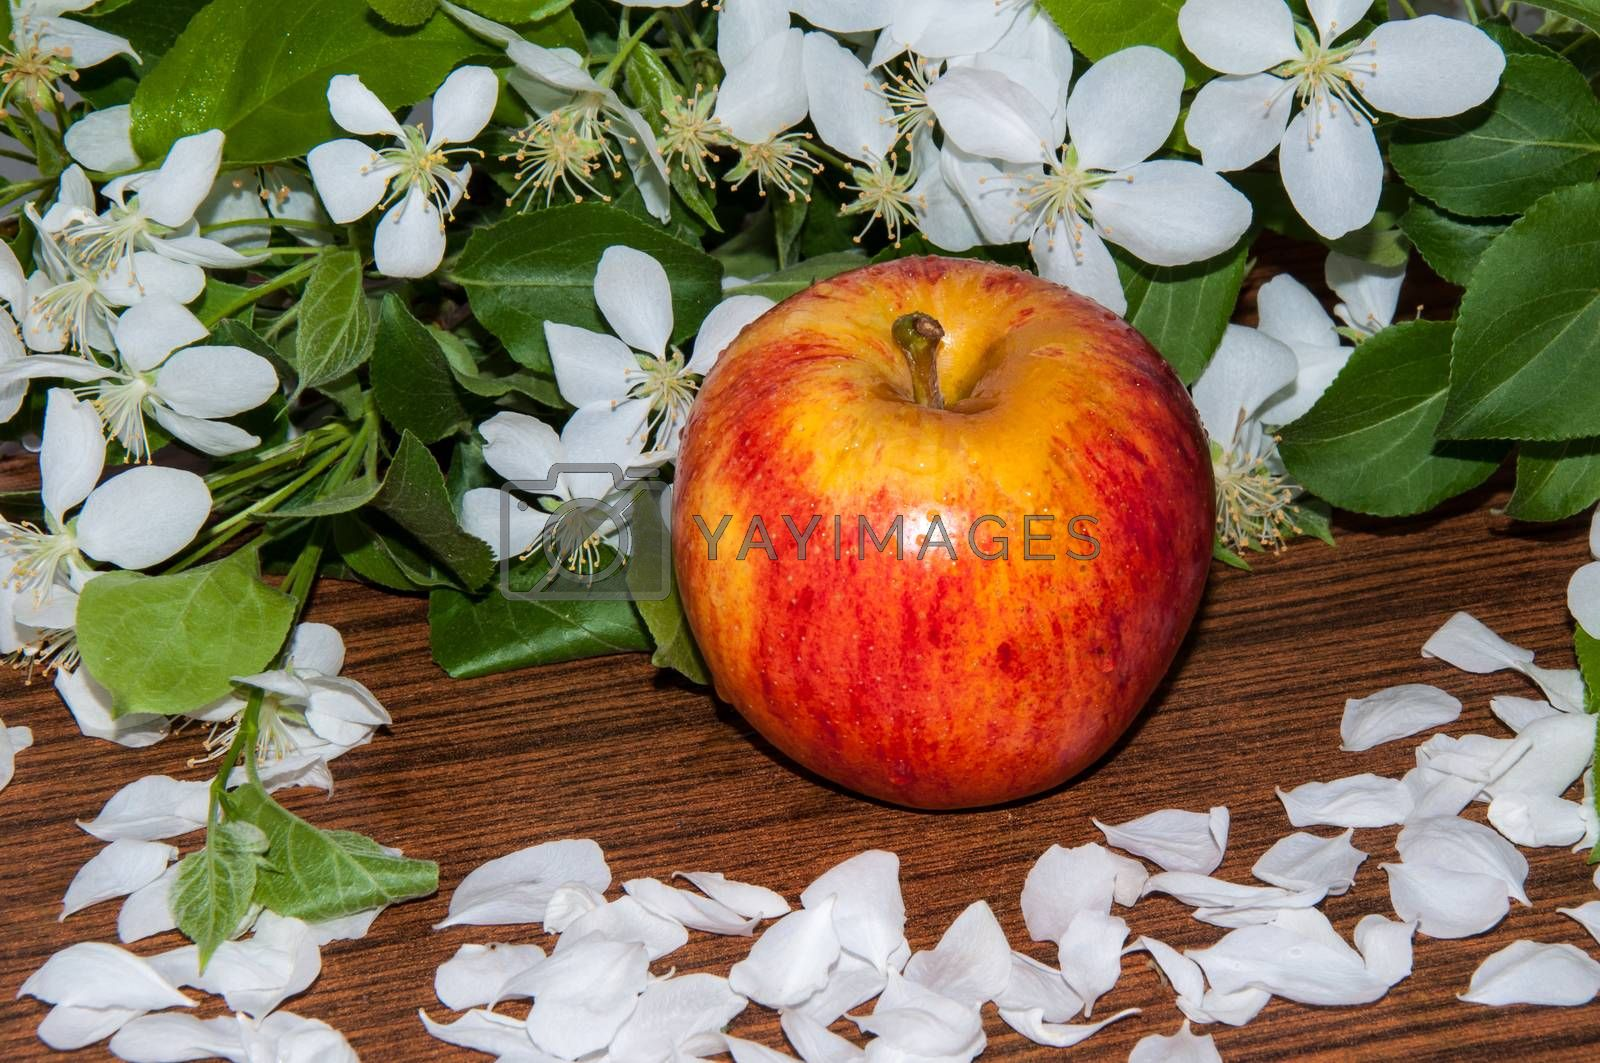 Royalty free image of Apple and crabapple flowers by 0608195706081957